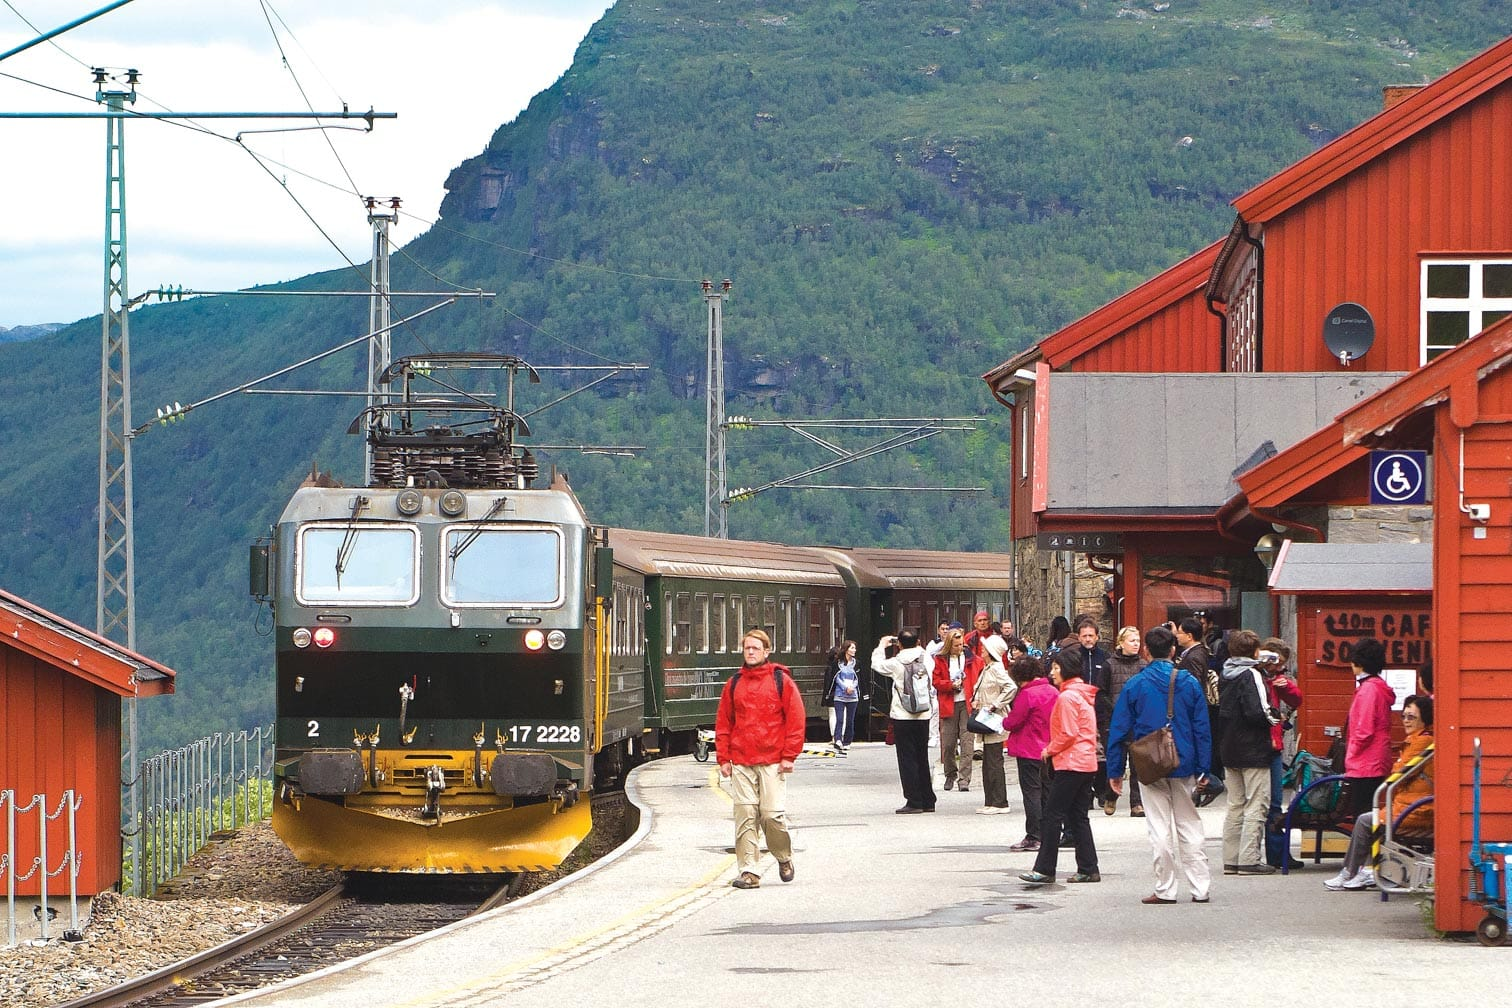 Flam Railway train stopping at a station